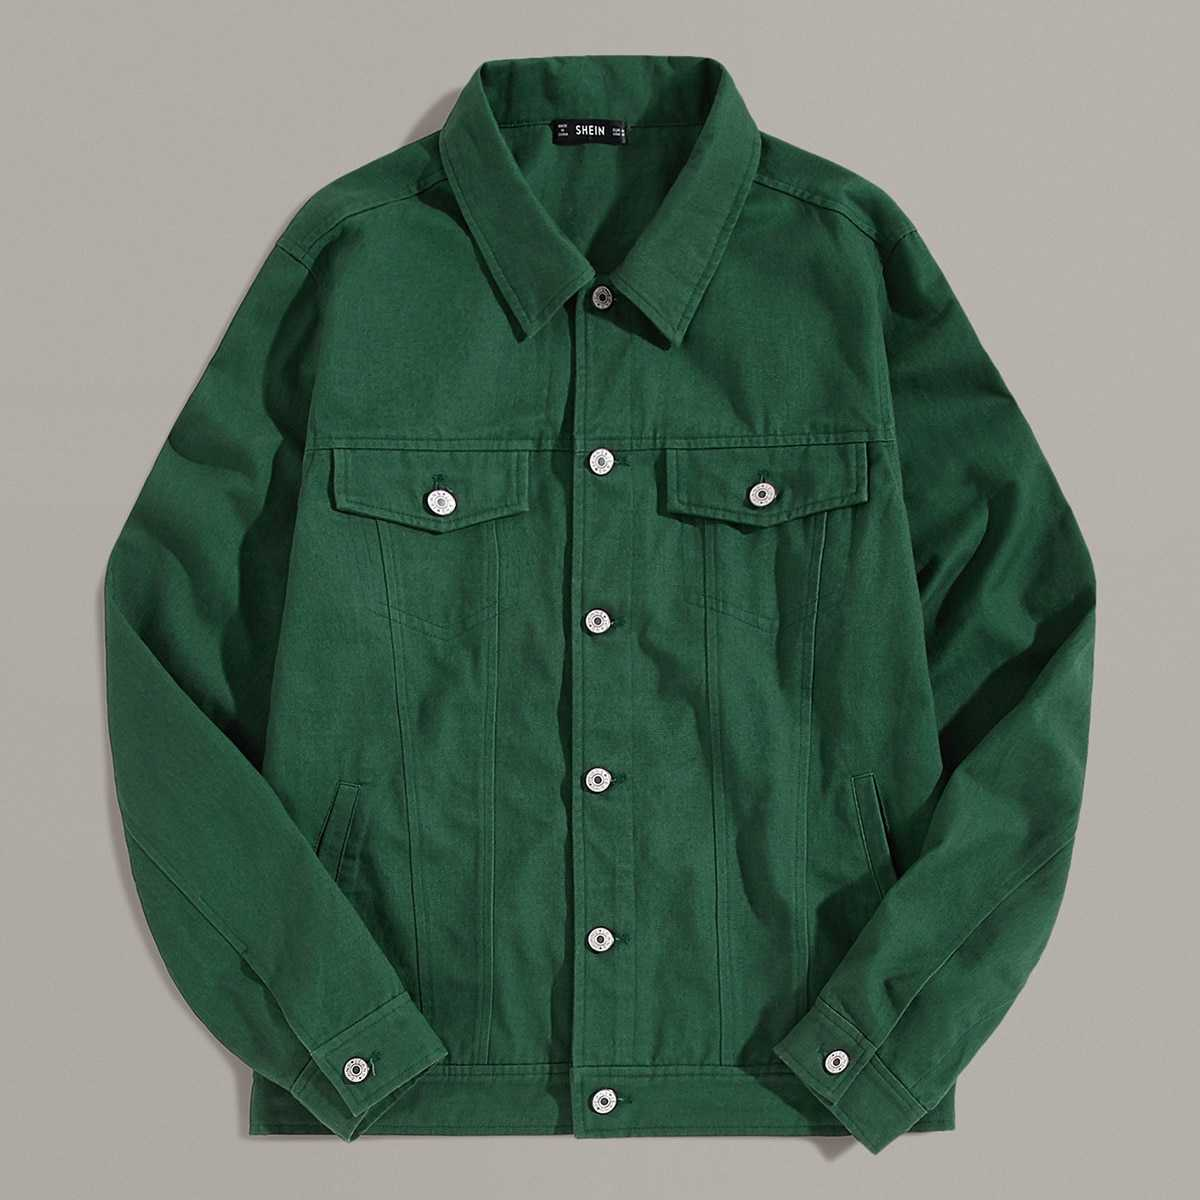 Guys Flap Pocket Patched Shirt in Green by ROMWE on GOOFASH